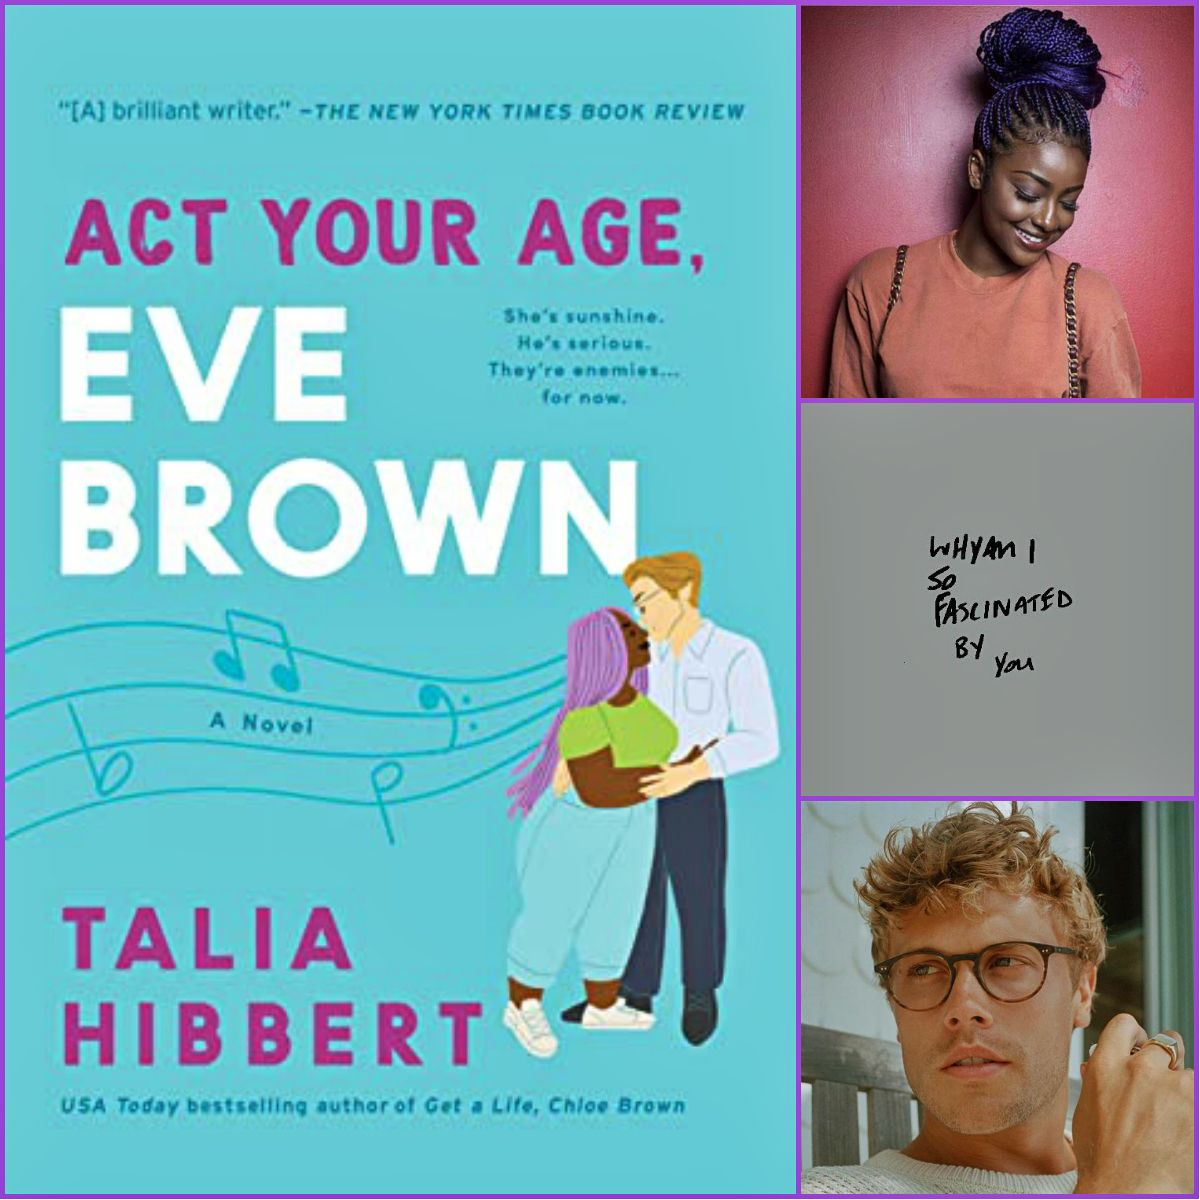 Act Your Age Eve Brown By Talia Hibbert Act Your Age Usa Today Bestselling Author Bestselling Author